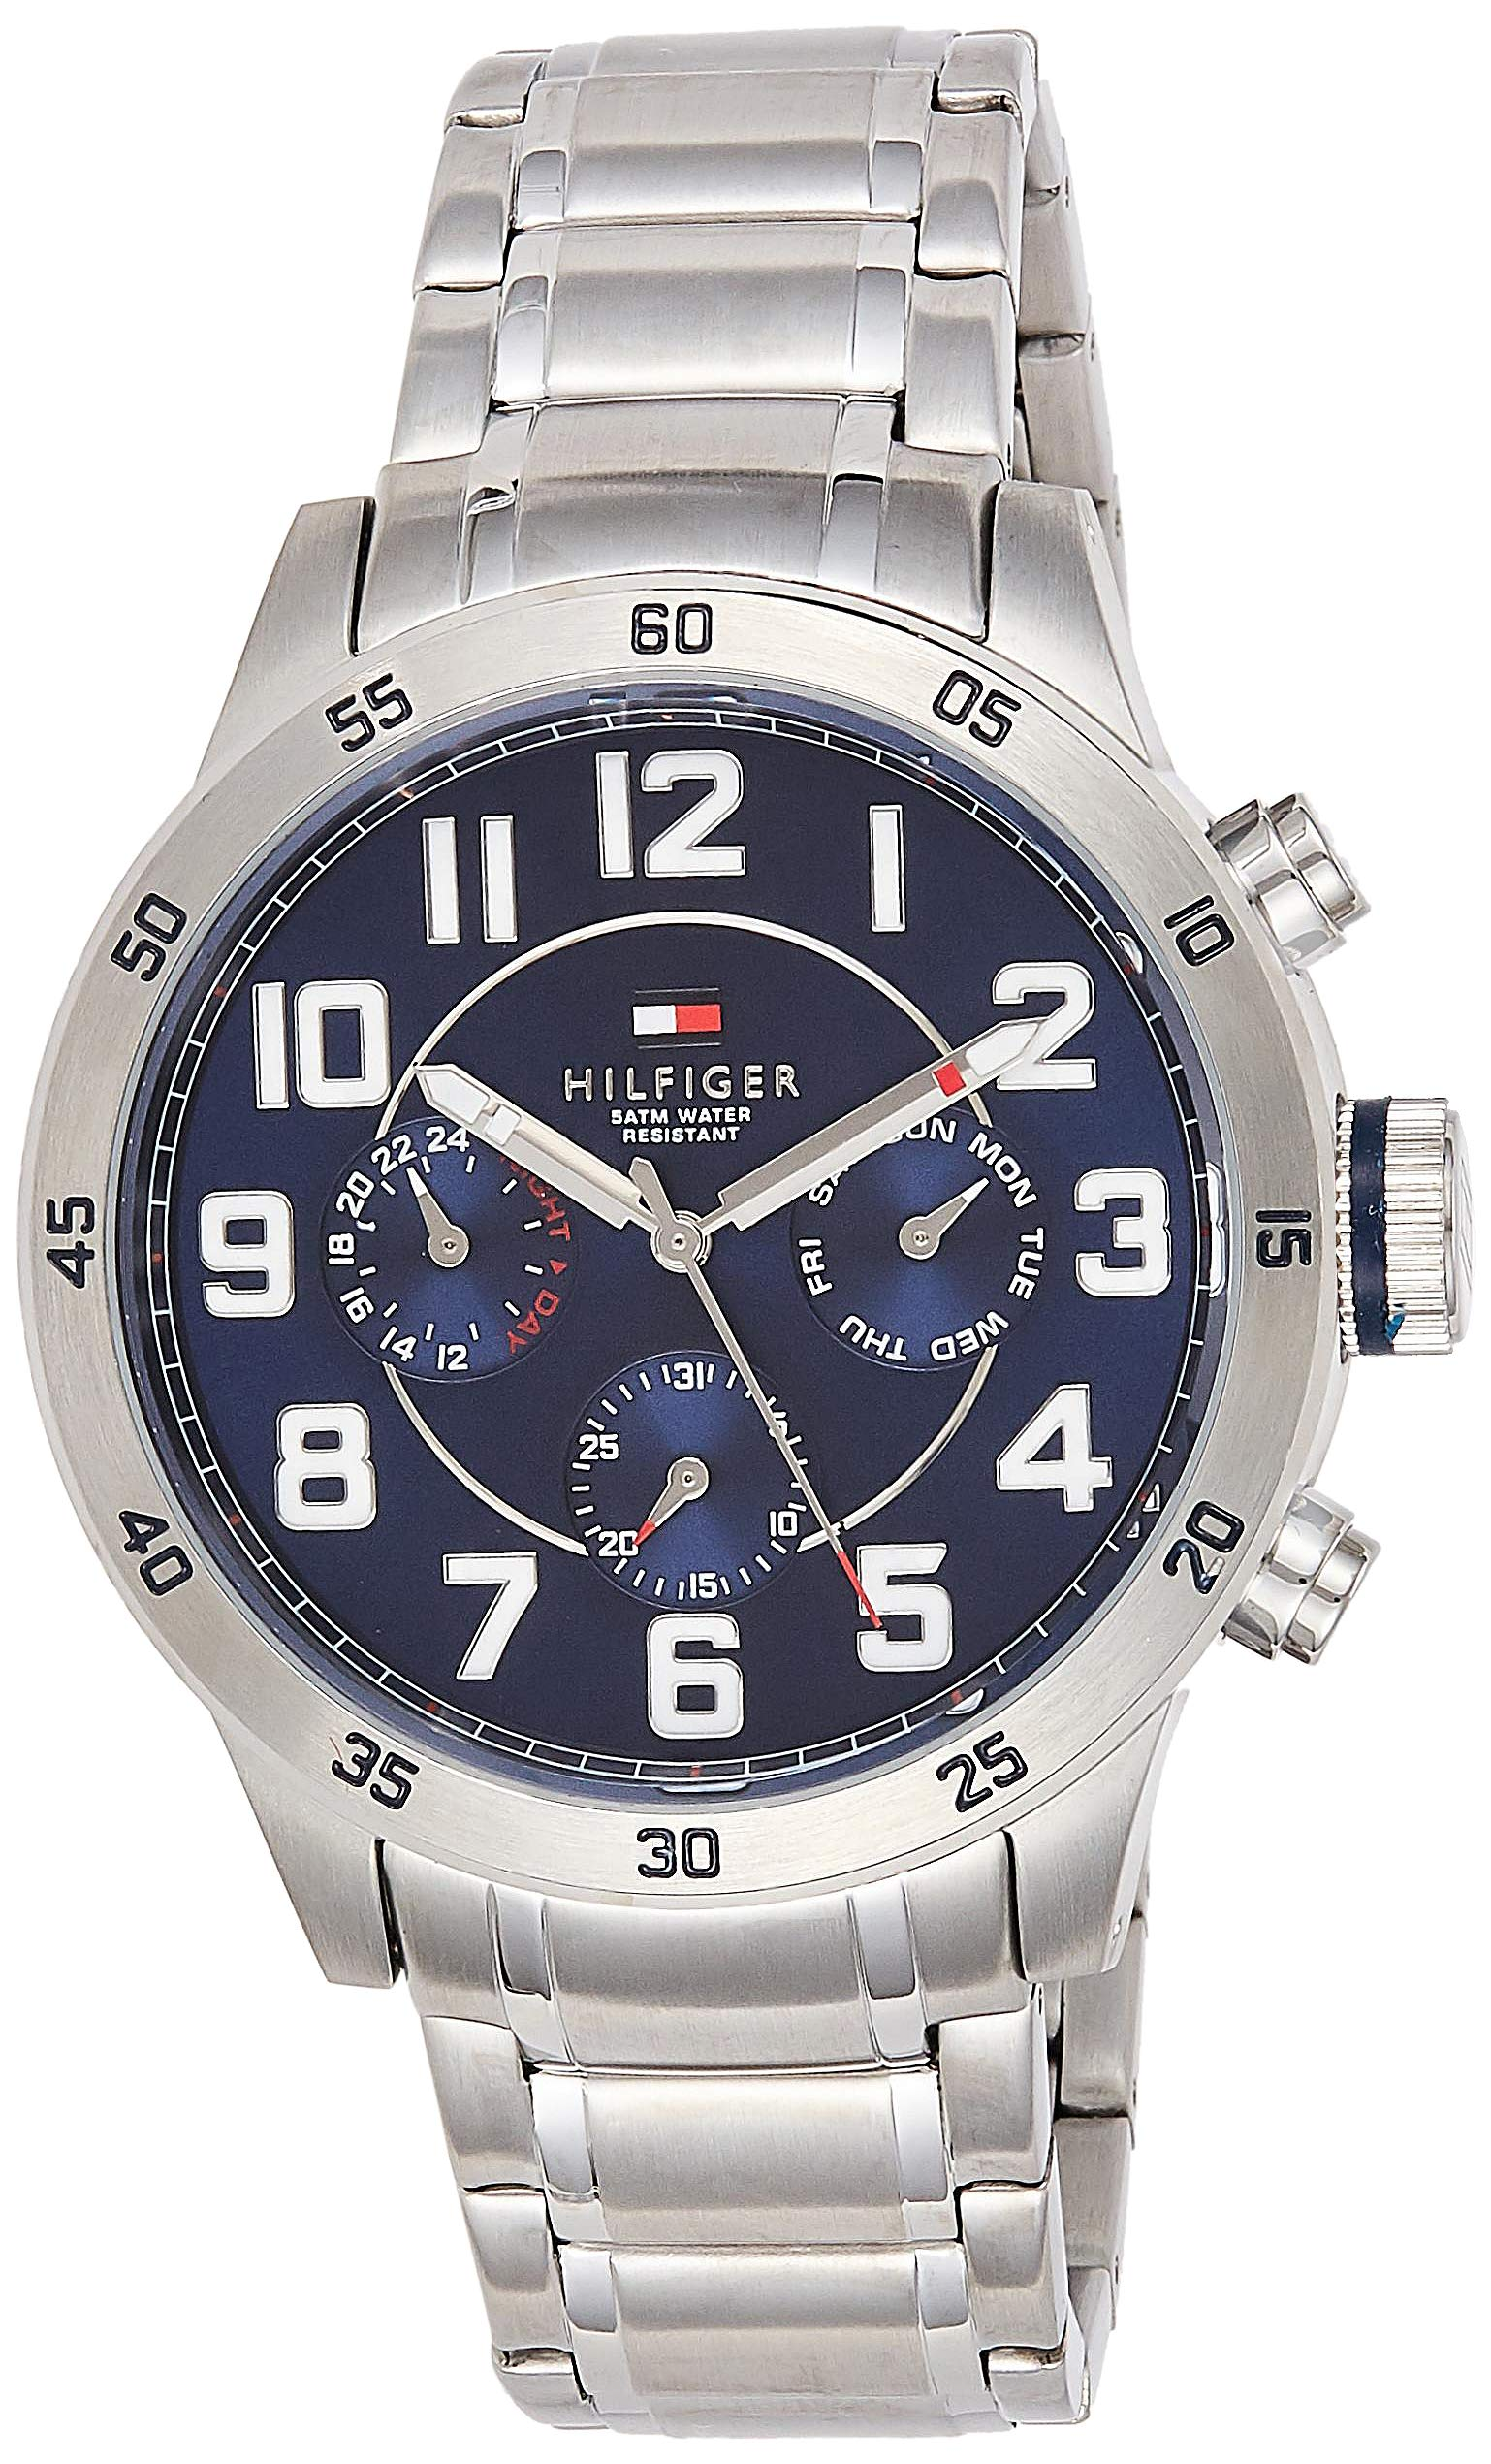 Tommy Hilfiger Men's 1791053 Stainless Steel Watch with Link Bracelet by Tommy Hilfiger